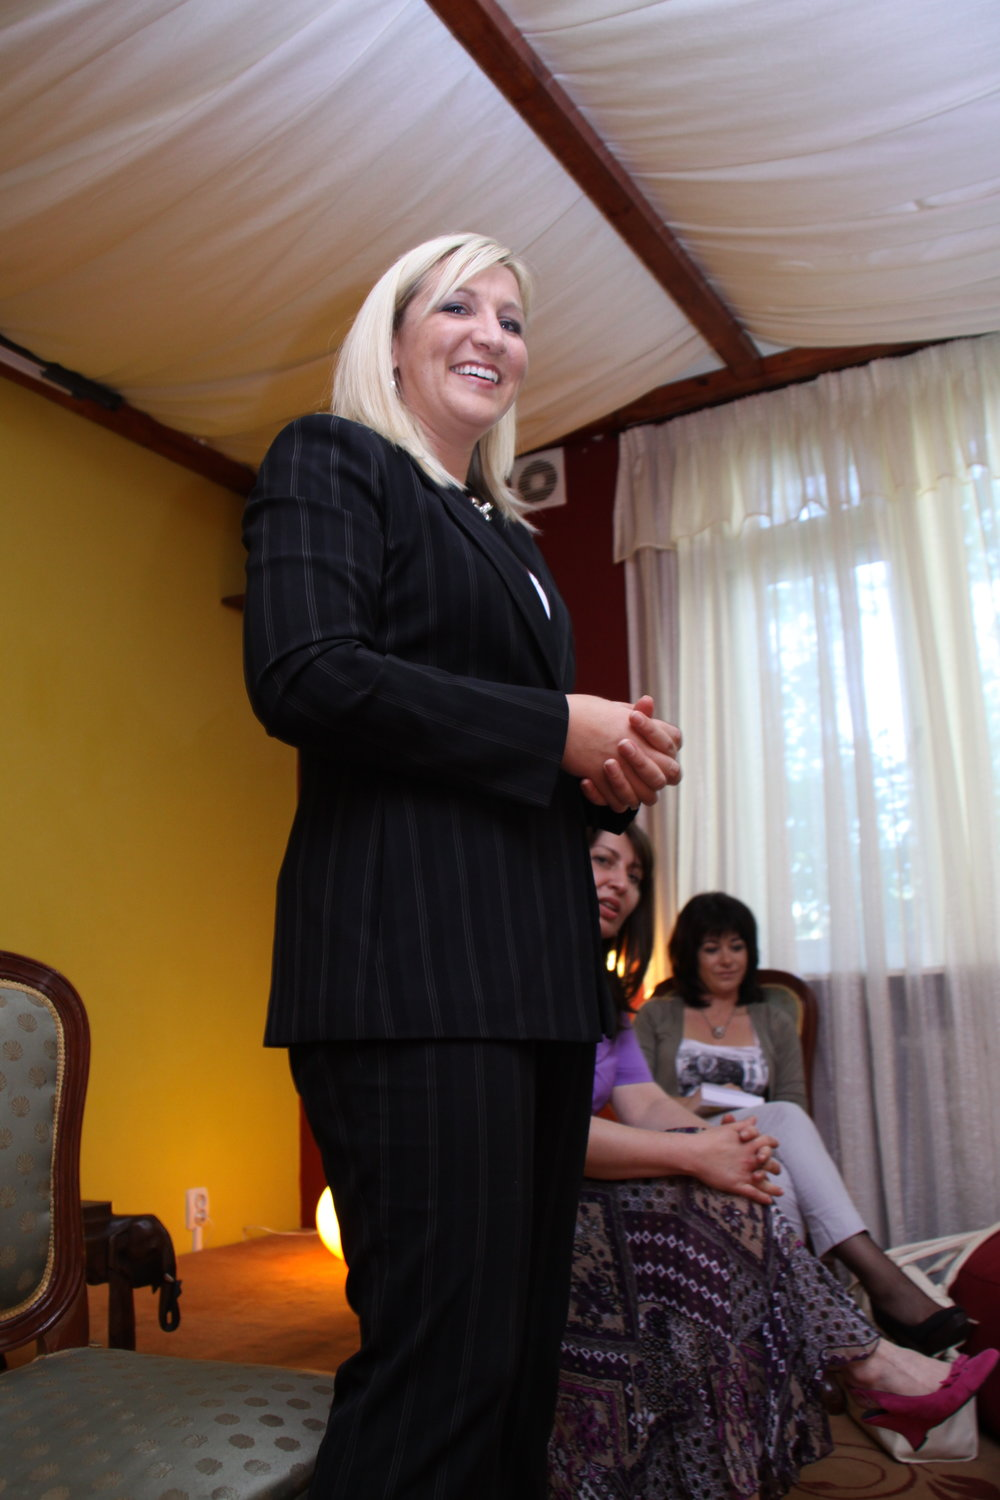 Tara giving a talk during a book launch in Romania